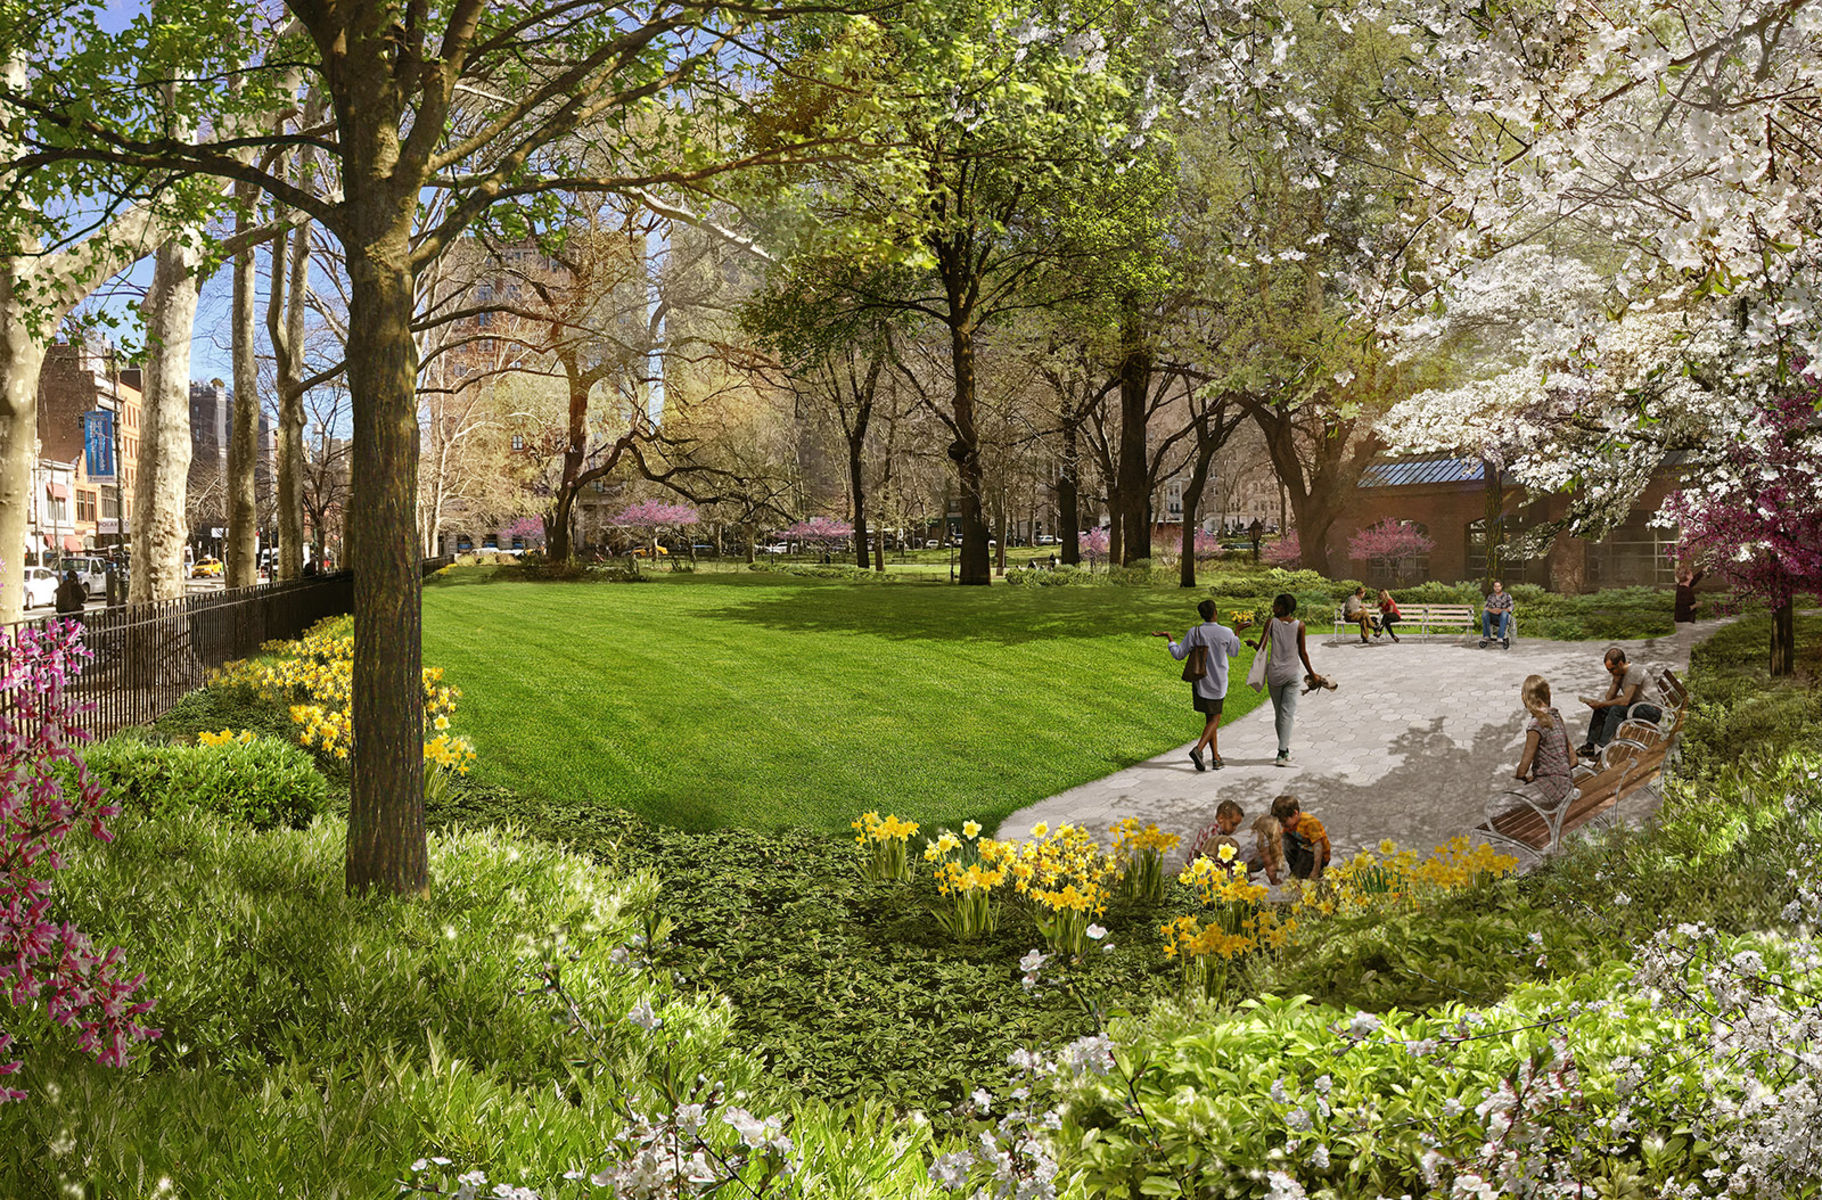 Rendering of Margaret Mead Green, a grassy expanse next to a paved terrace with people sitting on benches, surrounded by blossoming trees and plants.